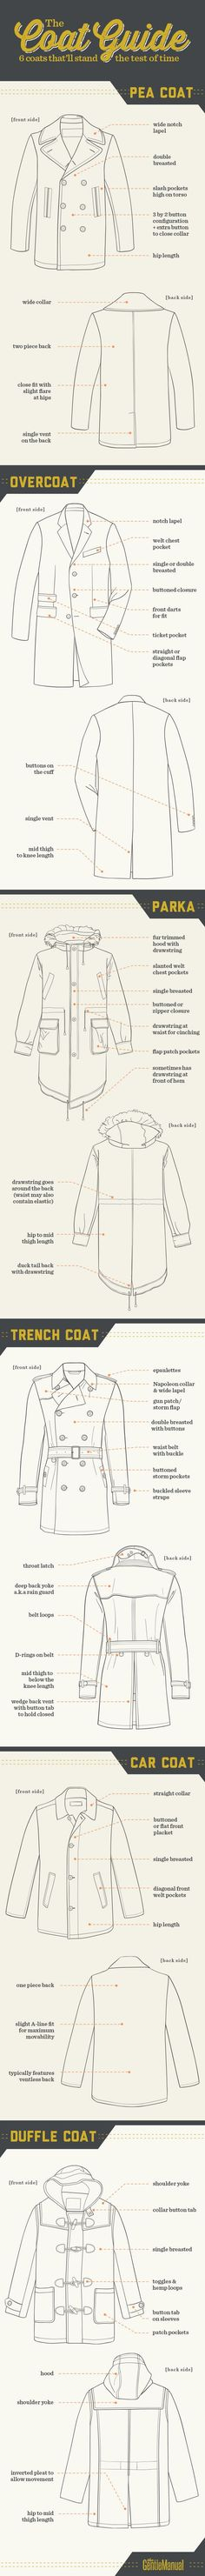 6 coat styles every man should know about. Stay warm and dapper from this guide and infographic from the GentleManual